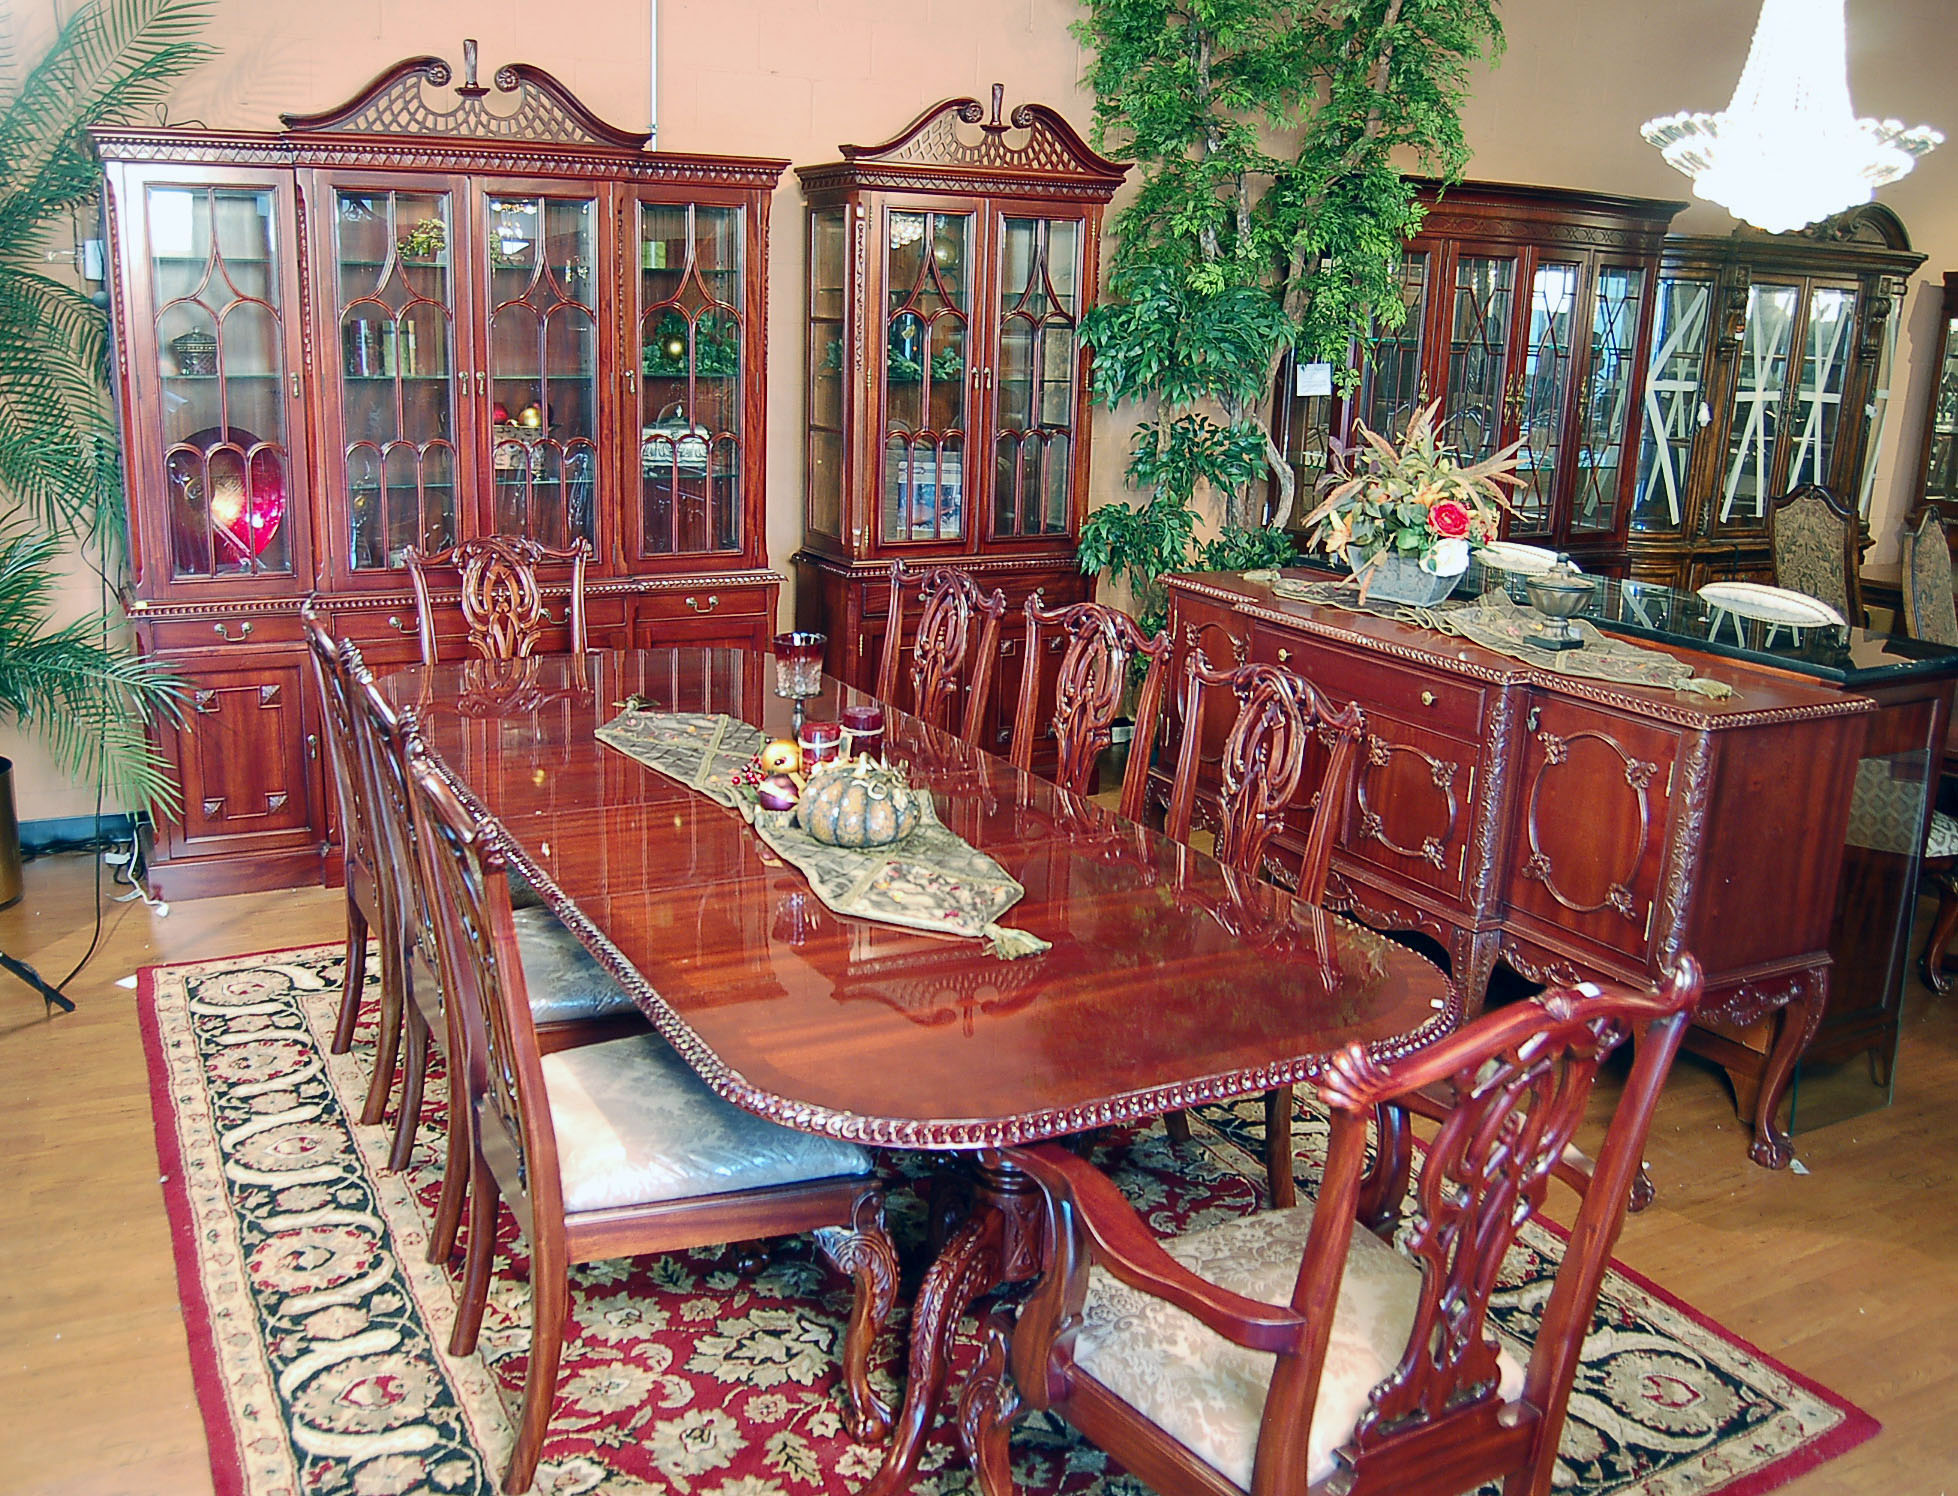 11pc Mahogany Dining Room Set Chippendale China Buffet eBay : fullview1exp from www.ebay.com size 1958 x 1496 jpeg 827kB